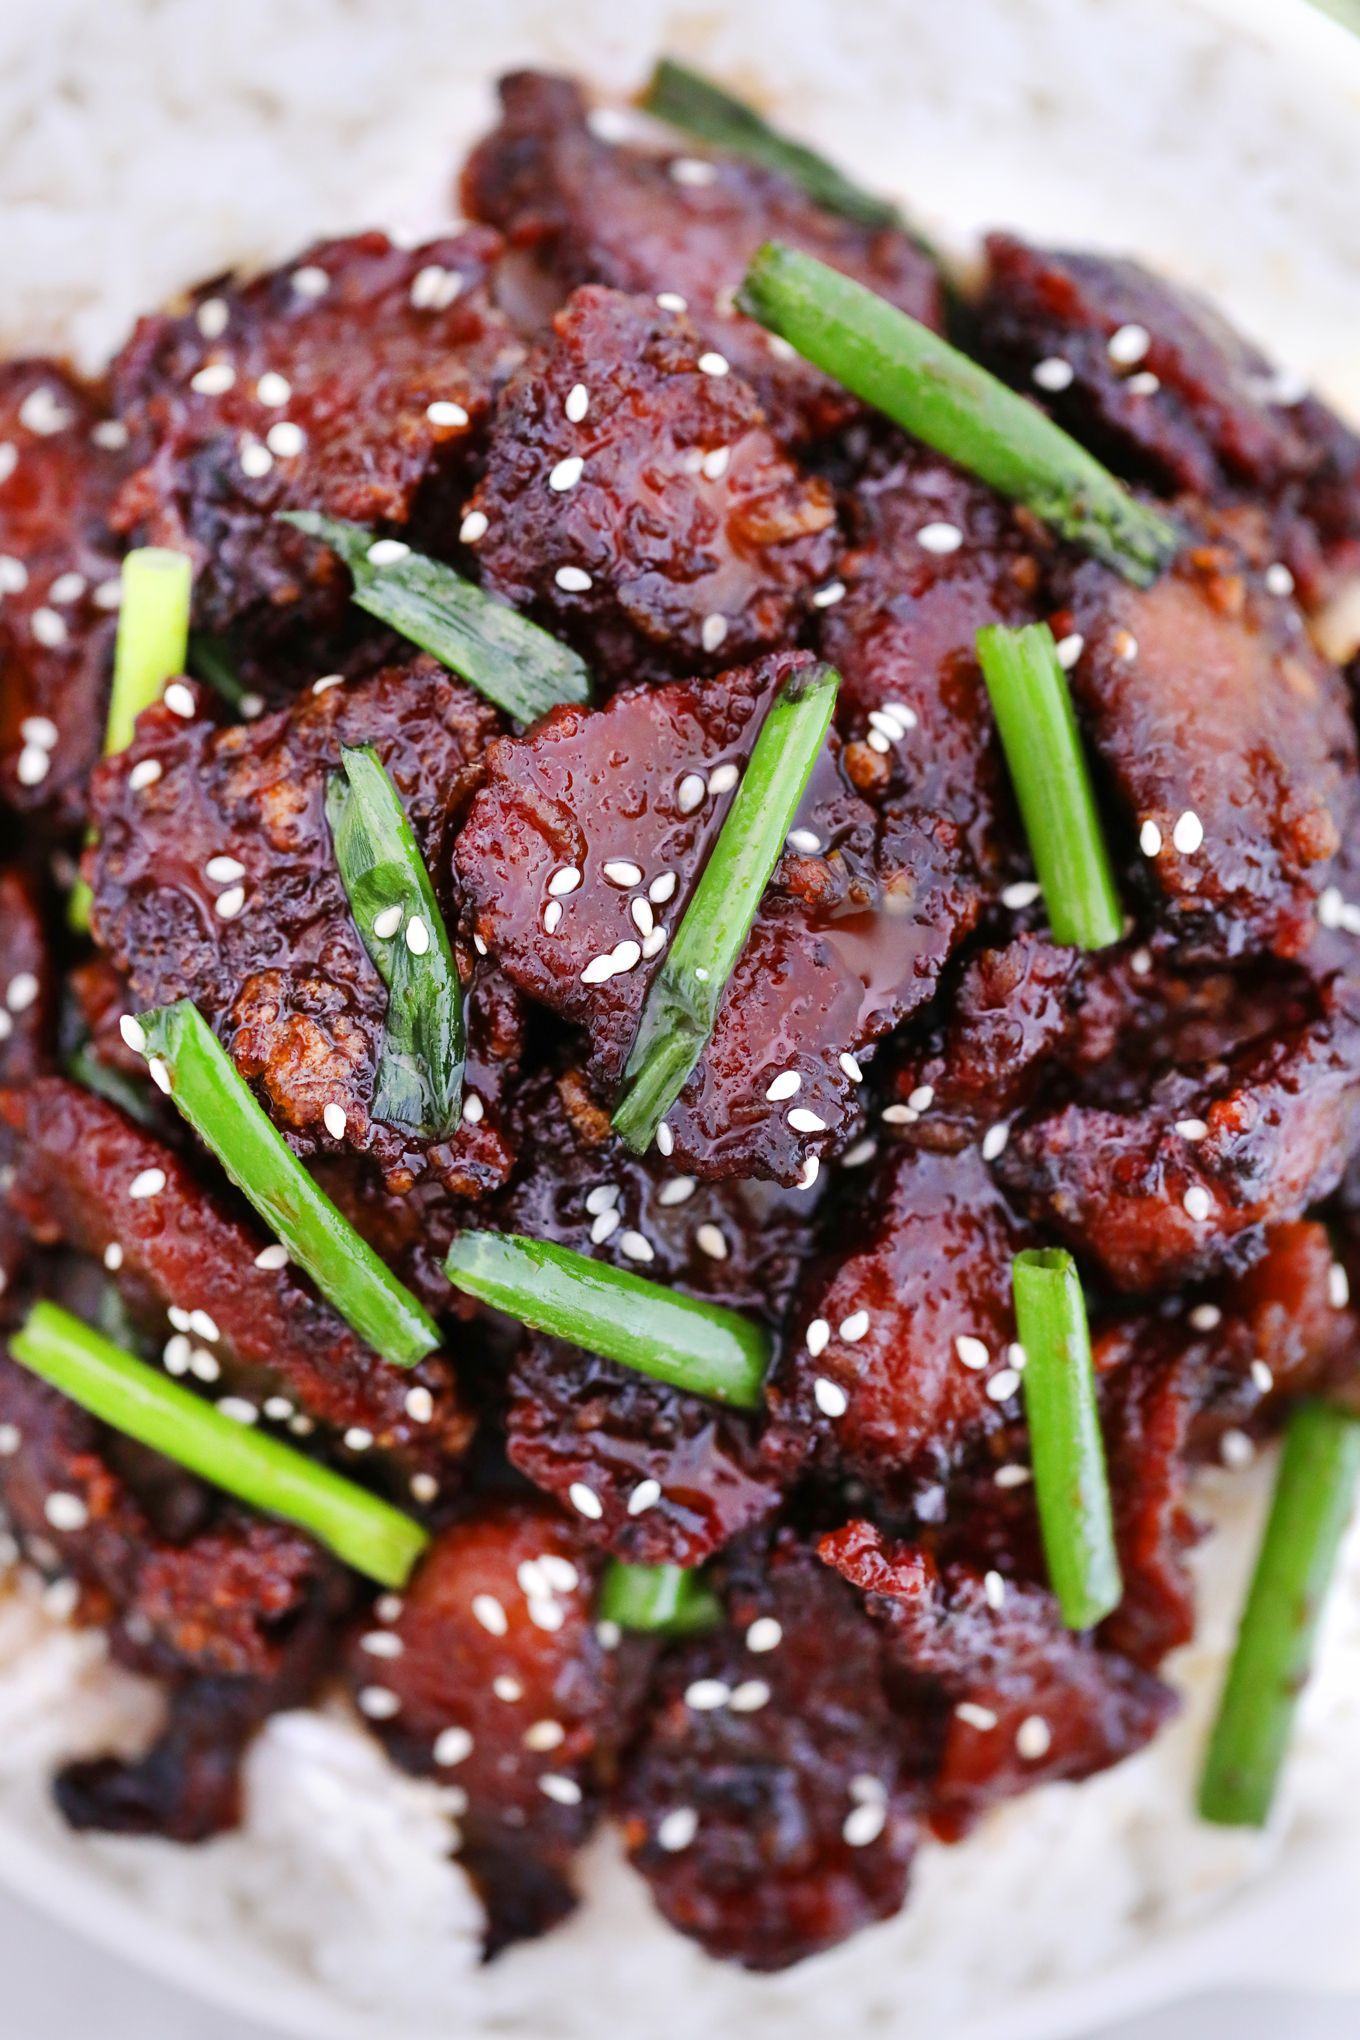 Mongolian Beef Recipe Video Sweet And Savory Meals Recipe Mongolian Beef Recipes Beef Recipes Roast Beef Recipes